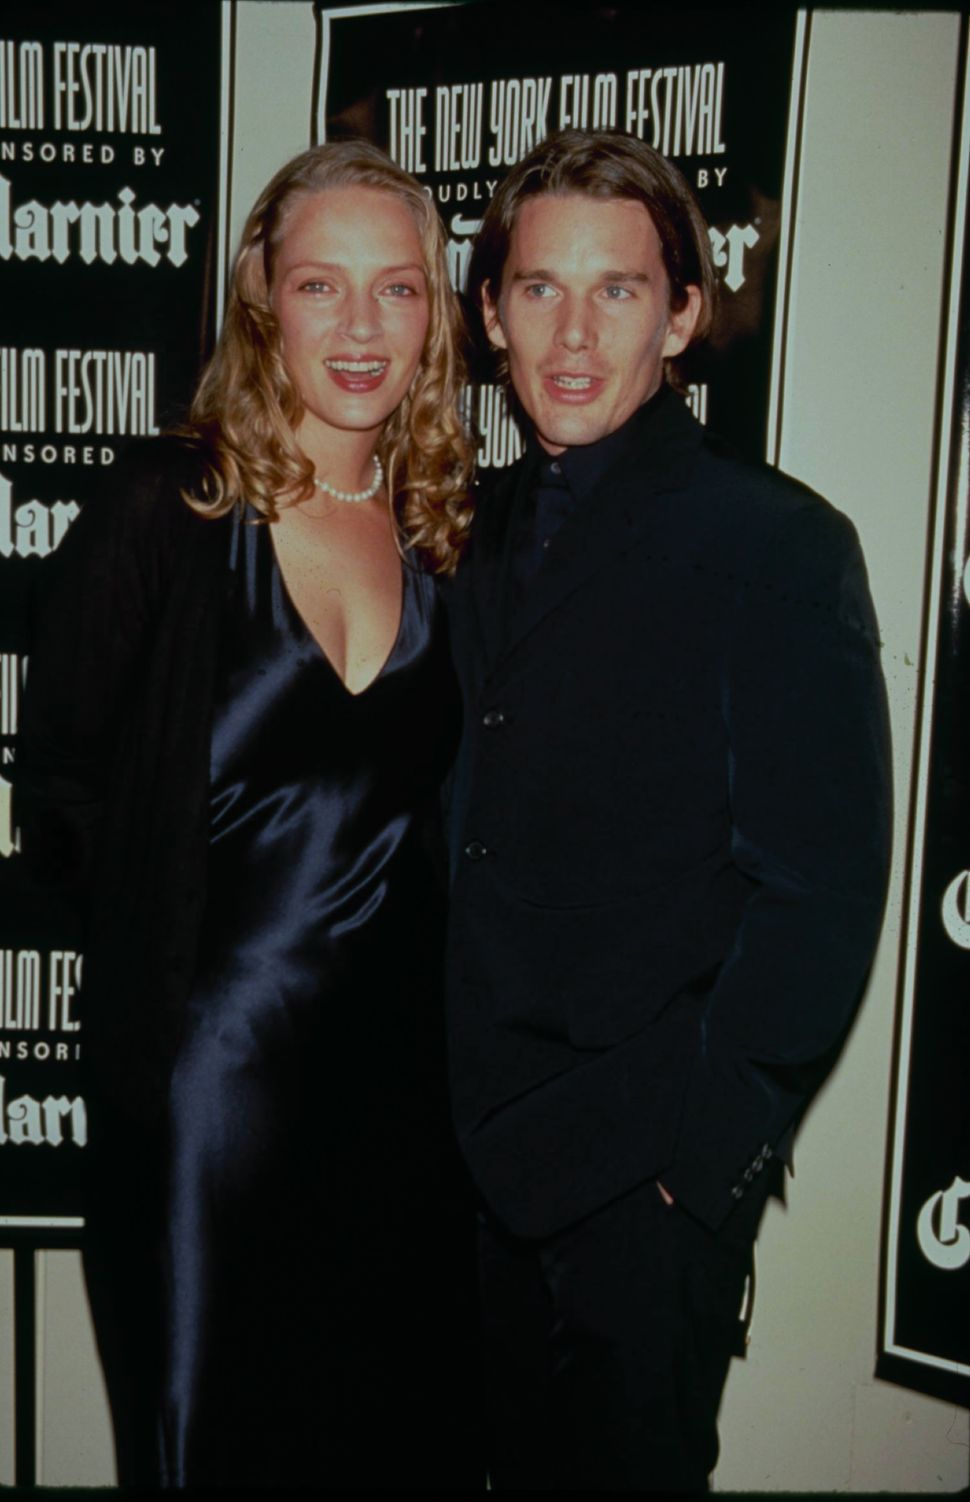 Sept. 25, 1998: Actress Uma Thurman and husband Ethan Hawke arrive for the opening of the 36th New York Film Festival at Linc